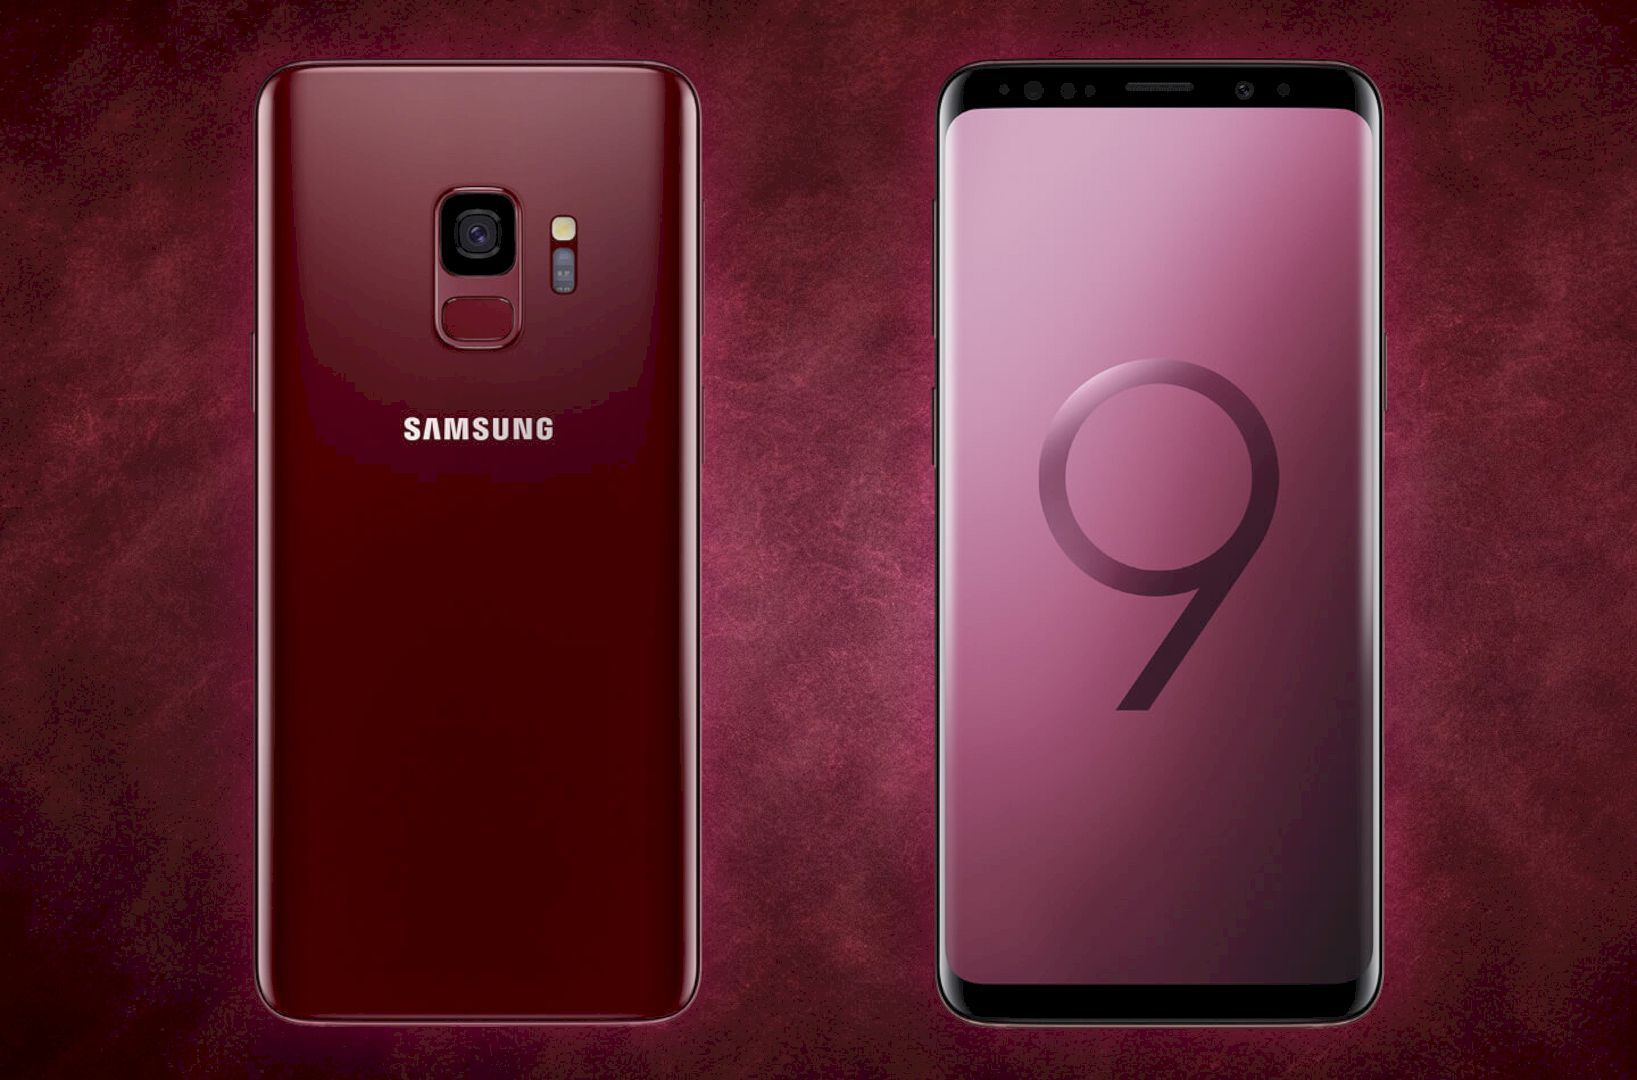 Samsung Galaxy S9 And S9 Vibrant Colors Sunrise Gold And Burgundy Red Editions Samsung Galaxy Samsung Galaxy S9